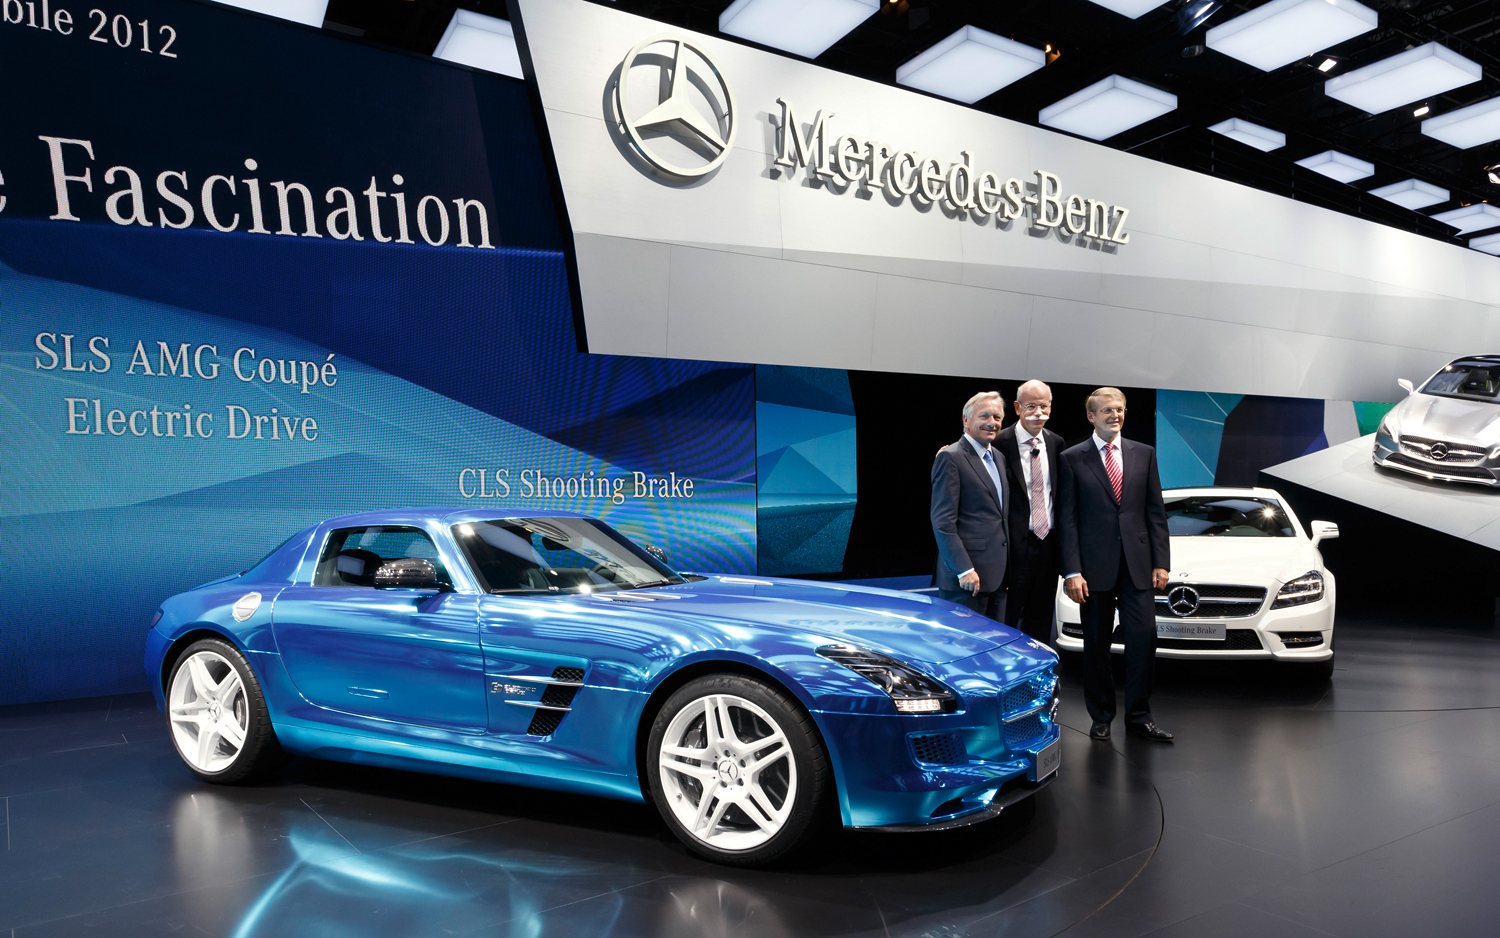 Mercedes-Benz SLS AMG Electric Drive image #8